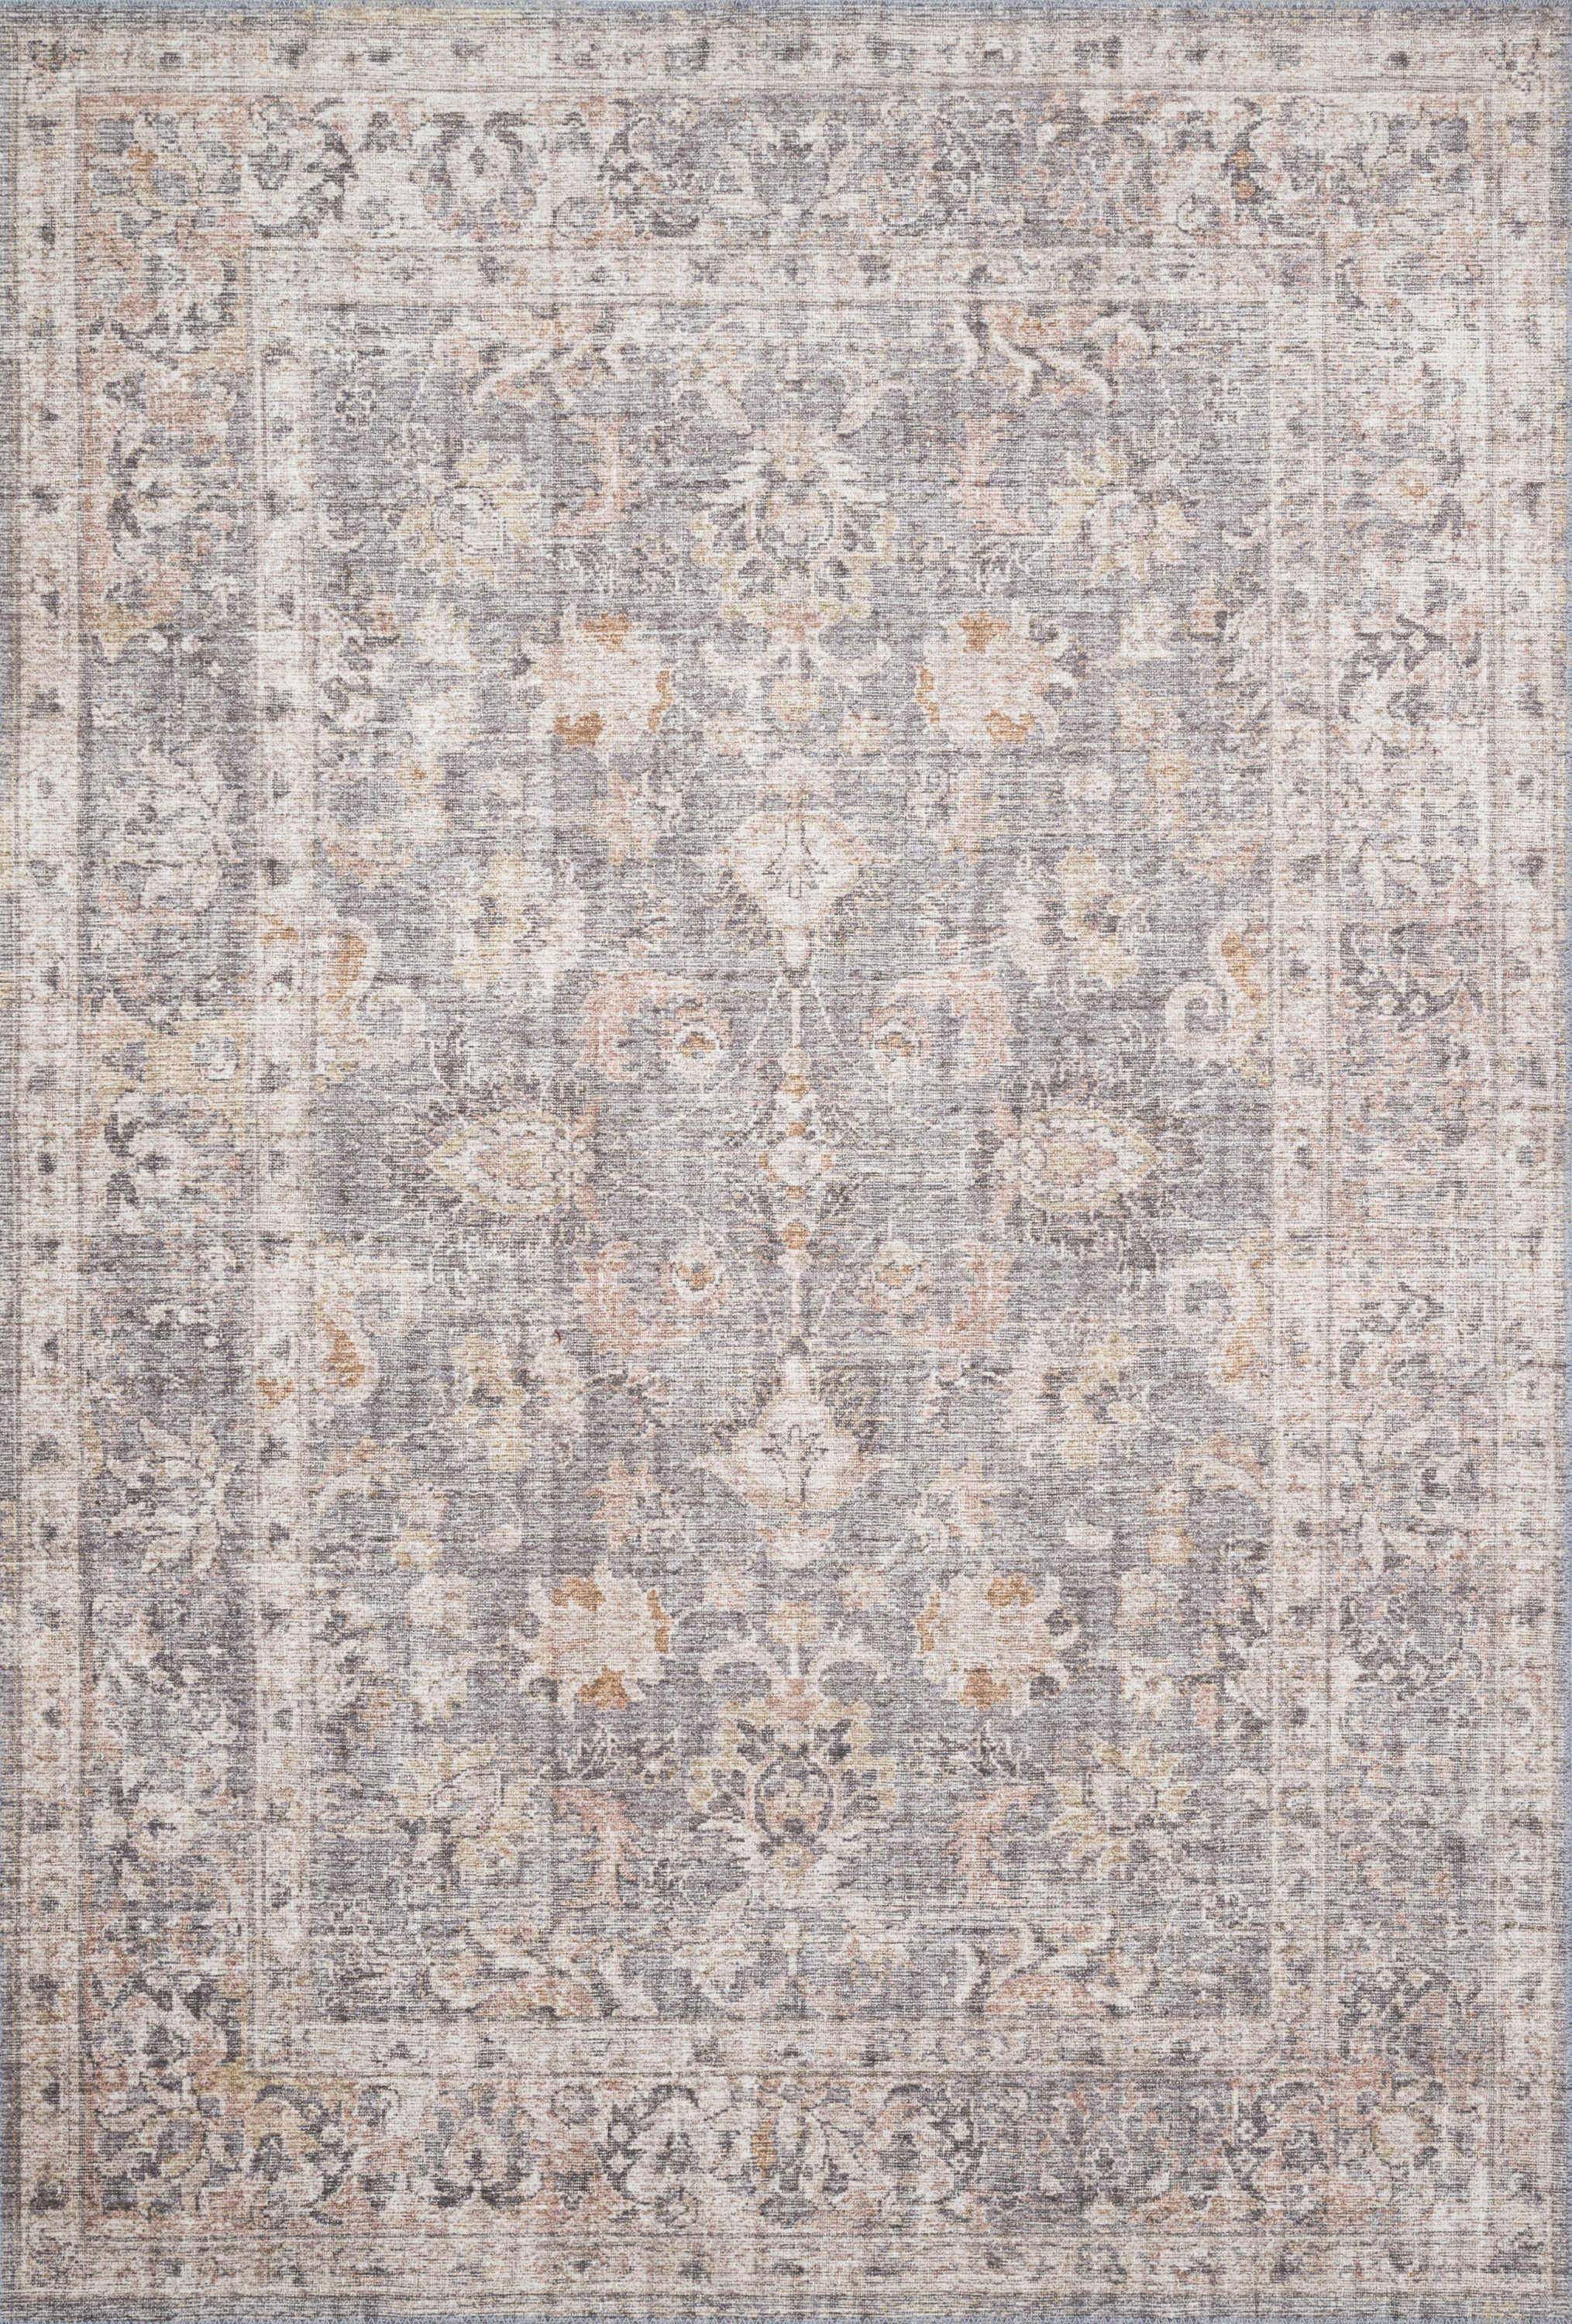 Skye Maybelle Rug Color Gray Apricot Size 7 6 X 9 6 In 2020 Rugs On Carpet Area Rugs Diy Carpet